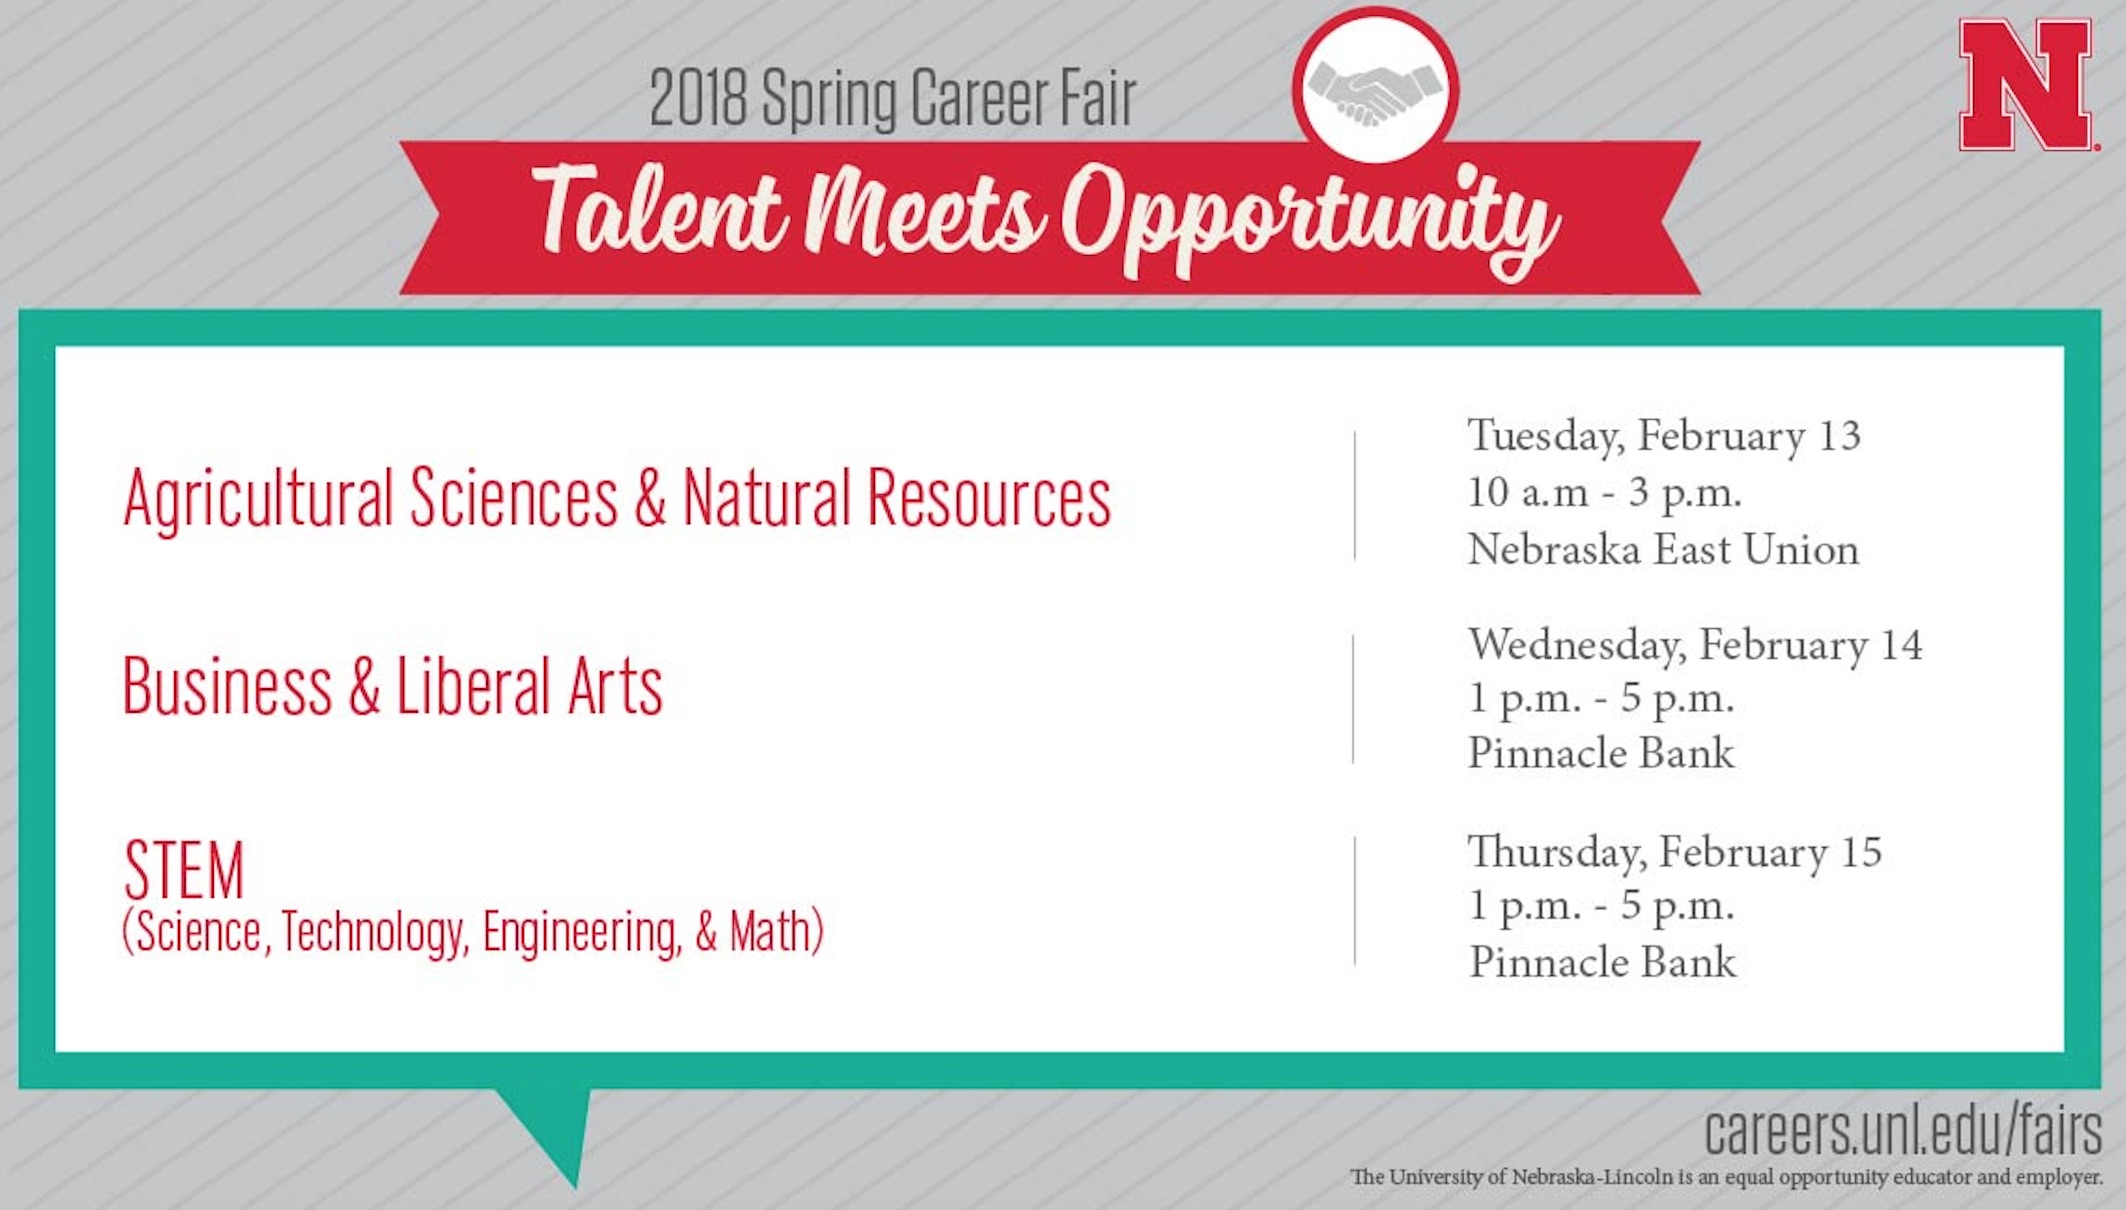 Spring 2018 Career Fairs Information